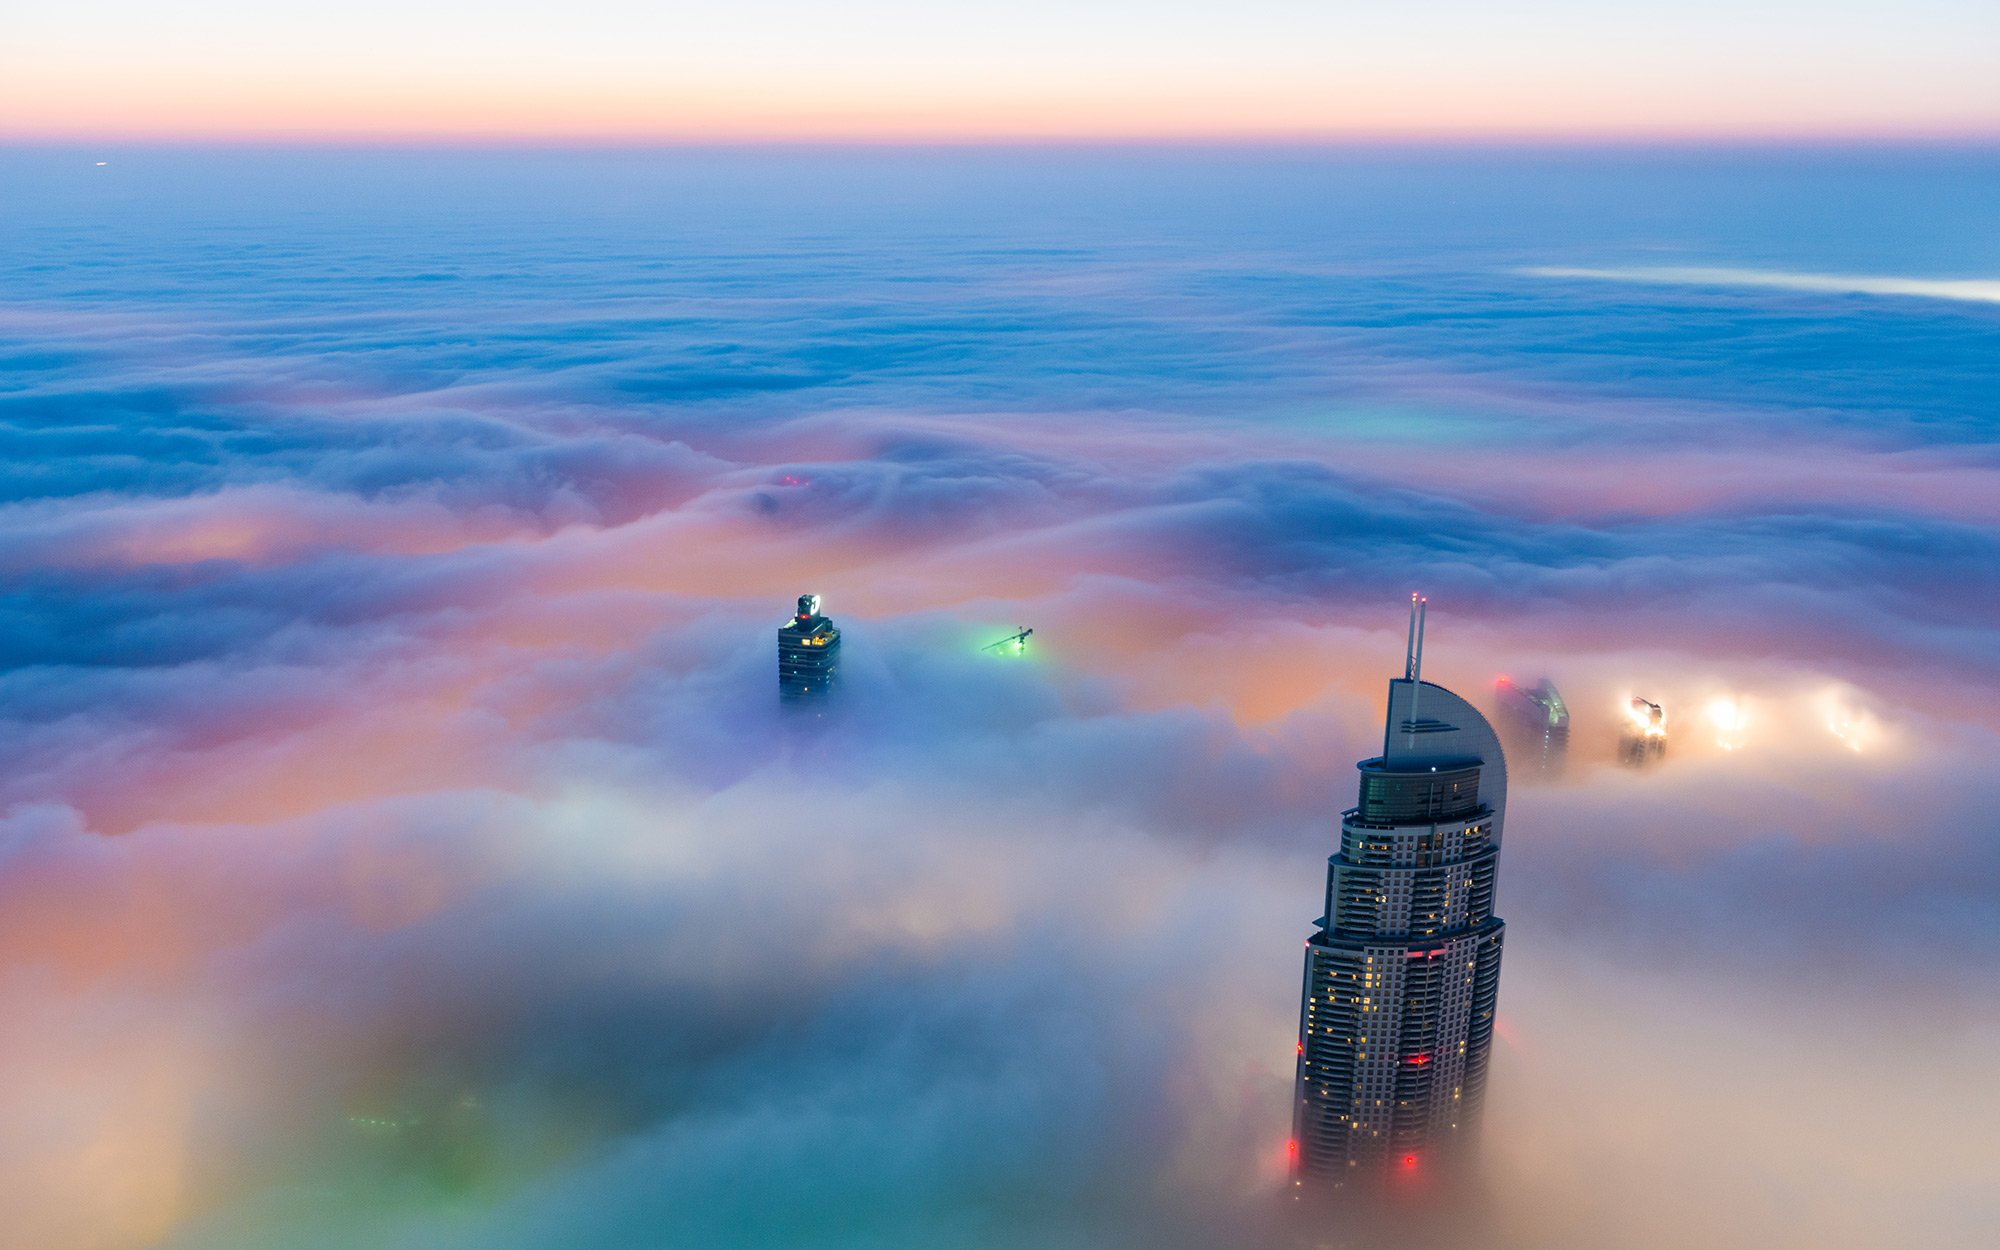 Overlooking Downtown Dubai during sunrise with lights shining through the blanket of white fog. Dubai, United Arab Emirates